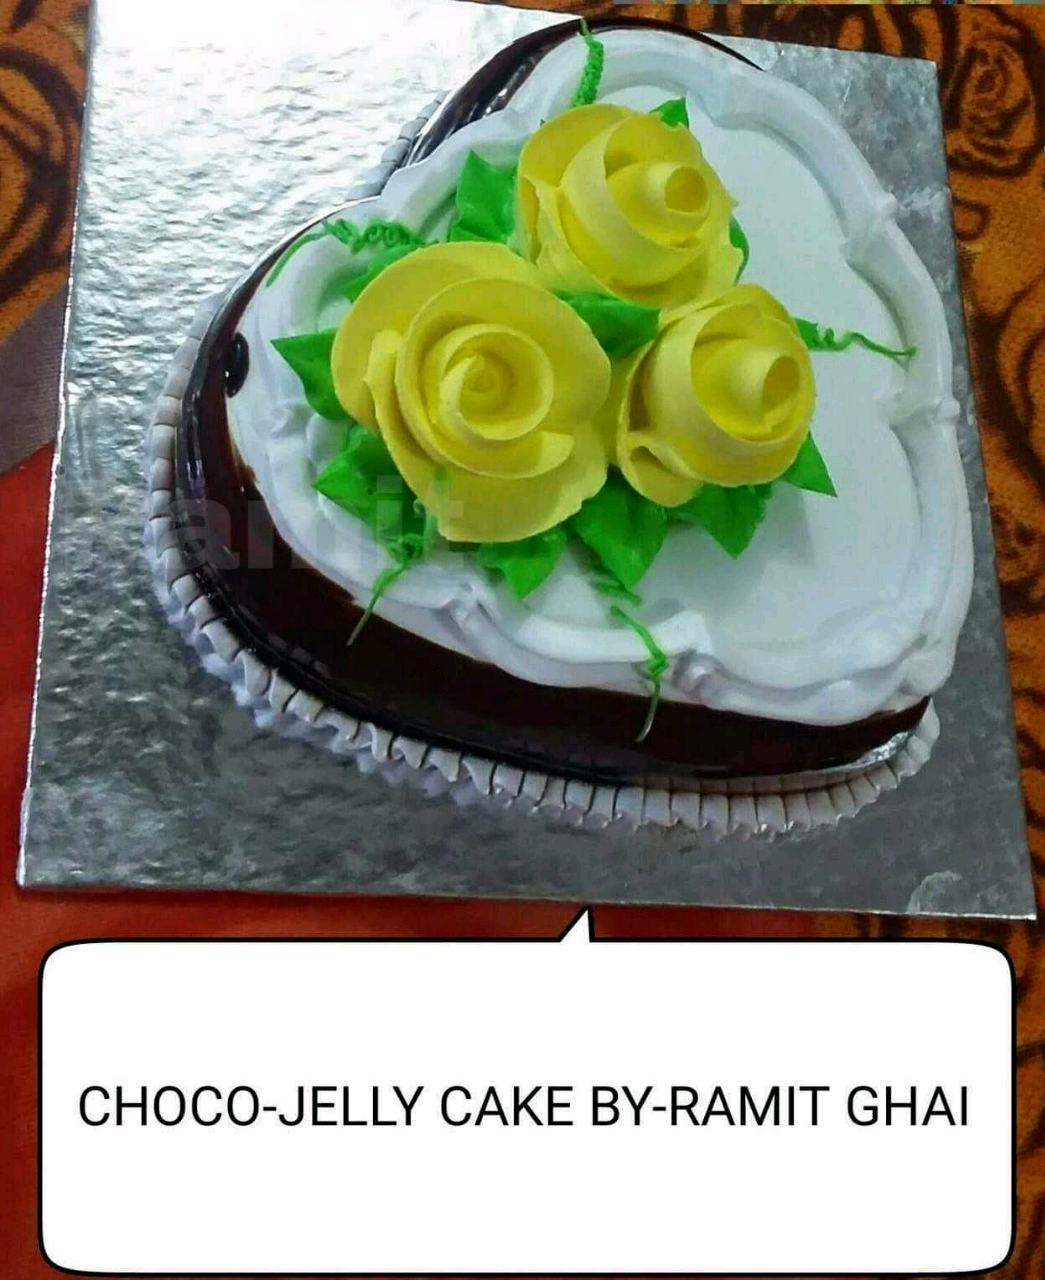 ChocoJelly Cake